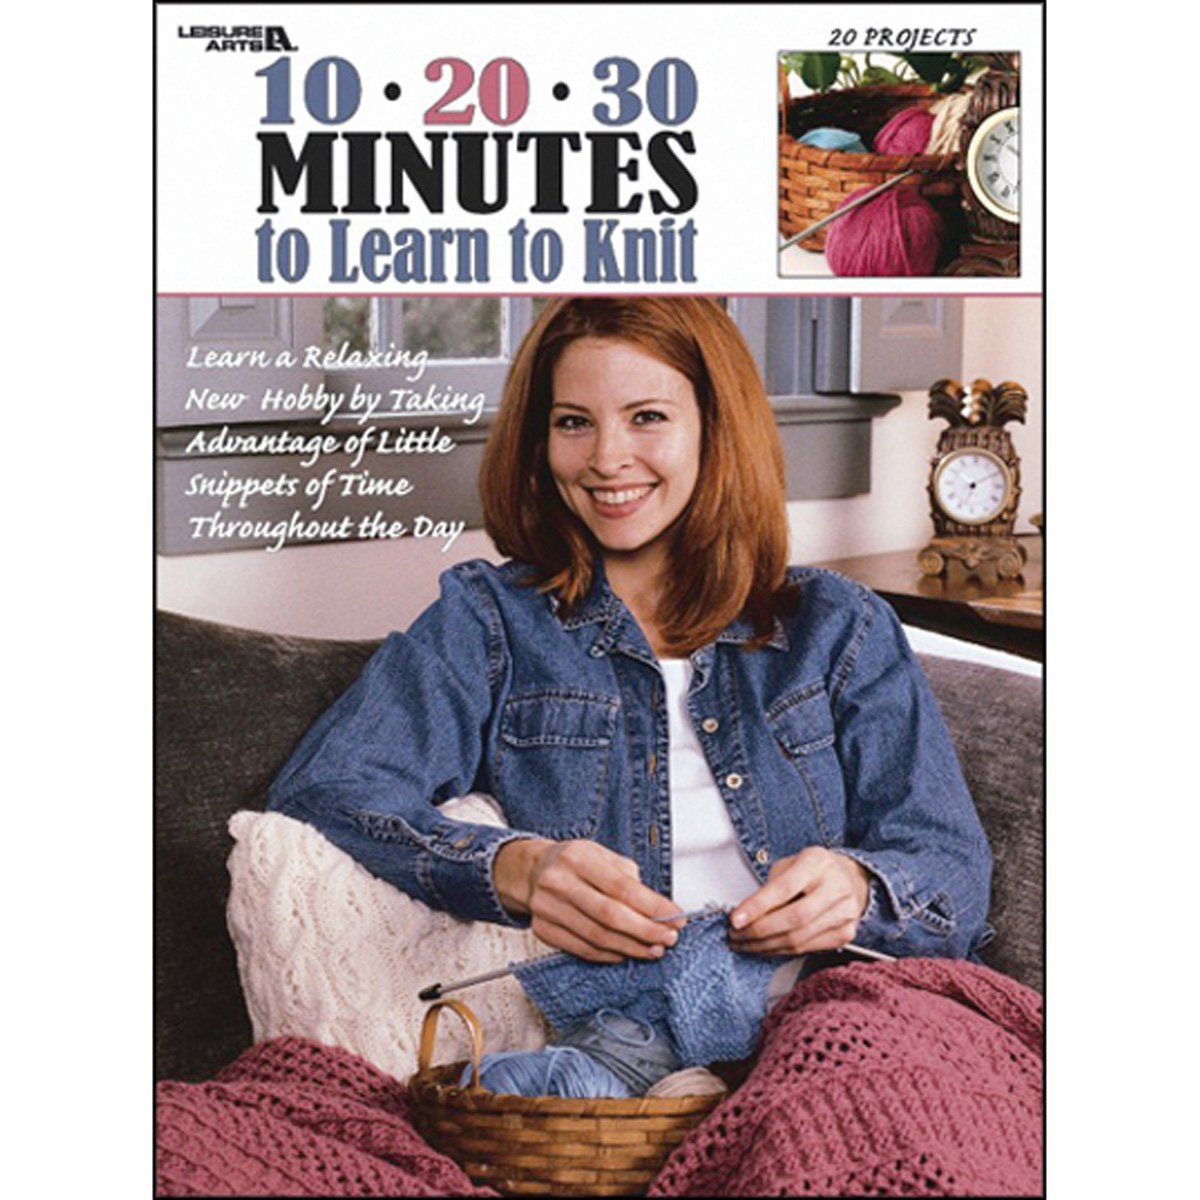 10-20-30 Minutes To Learn To Knit